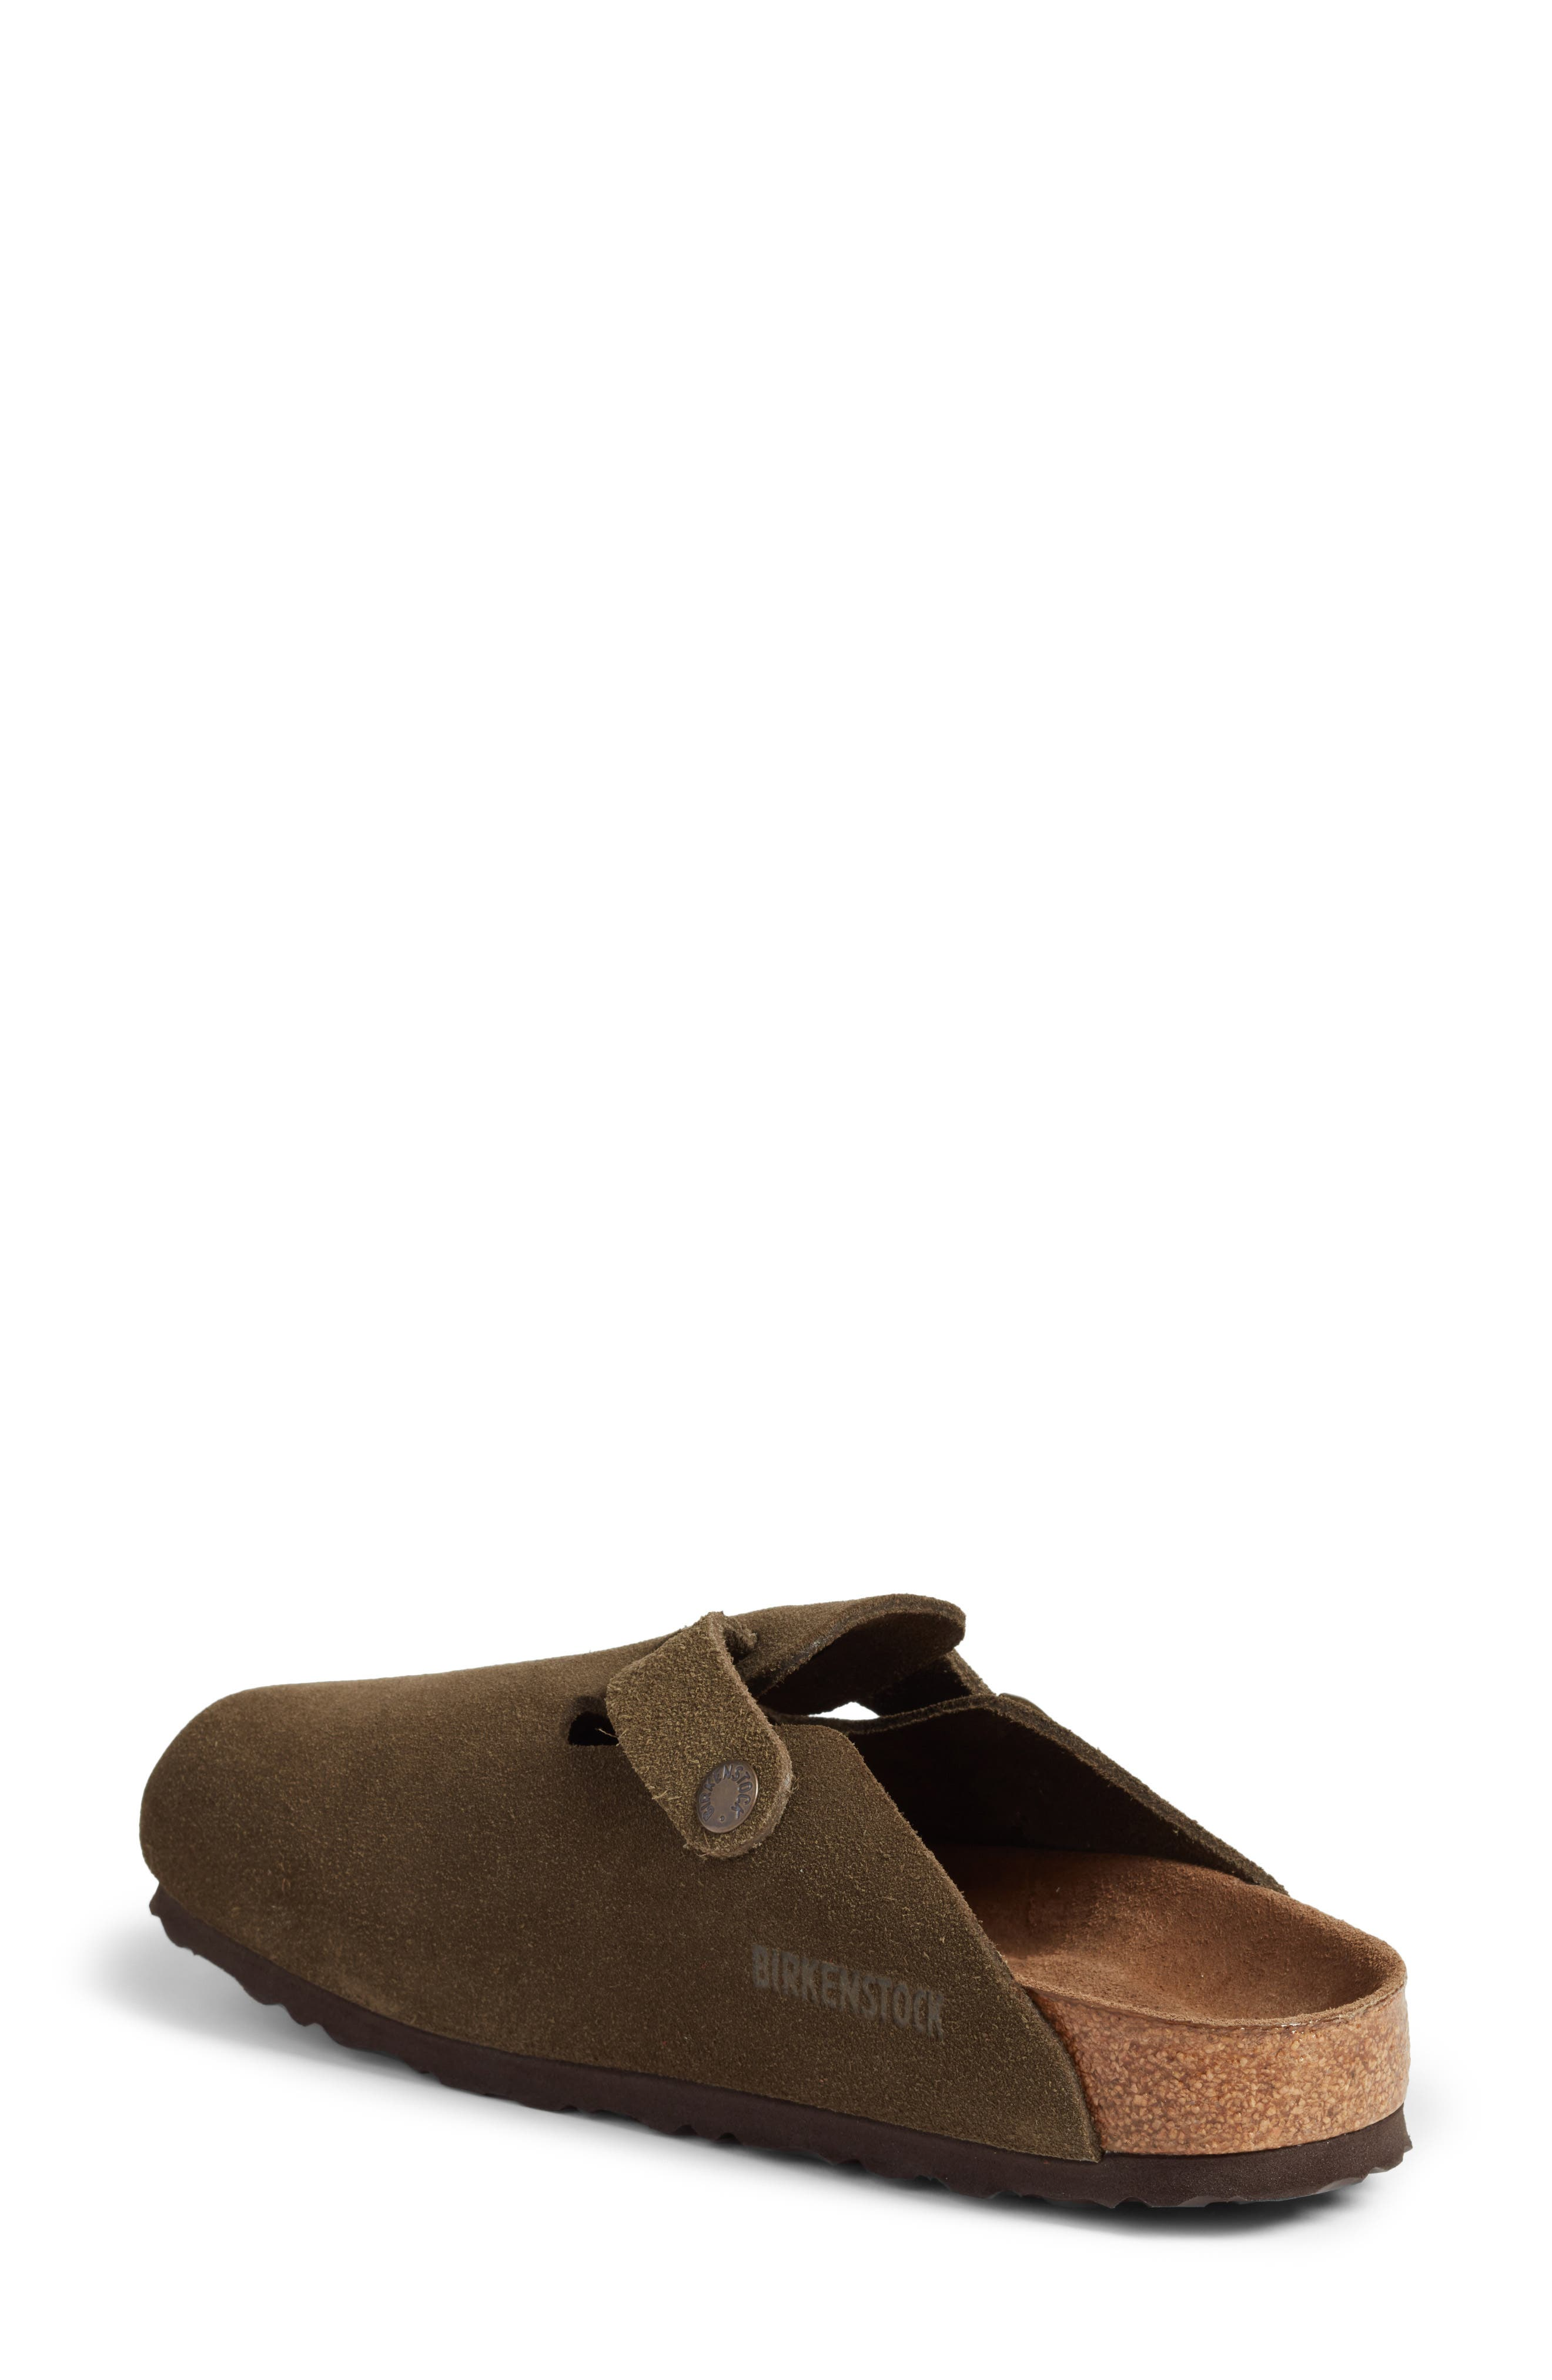 'Boston' Soft Footbed Clog,                             Alternate thumbnail 2, color,                             Forest Suede